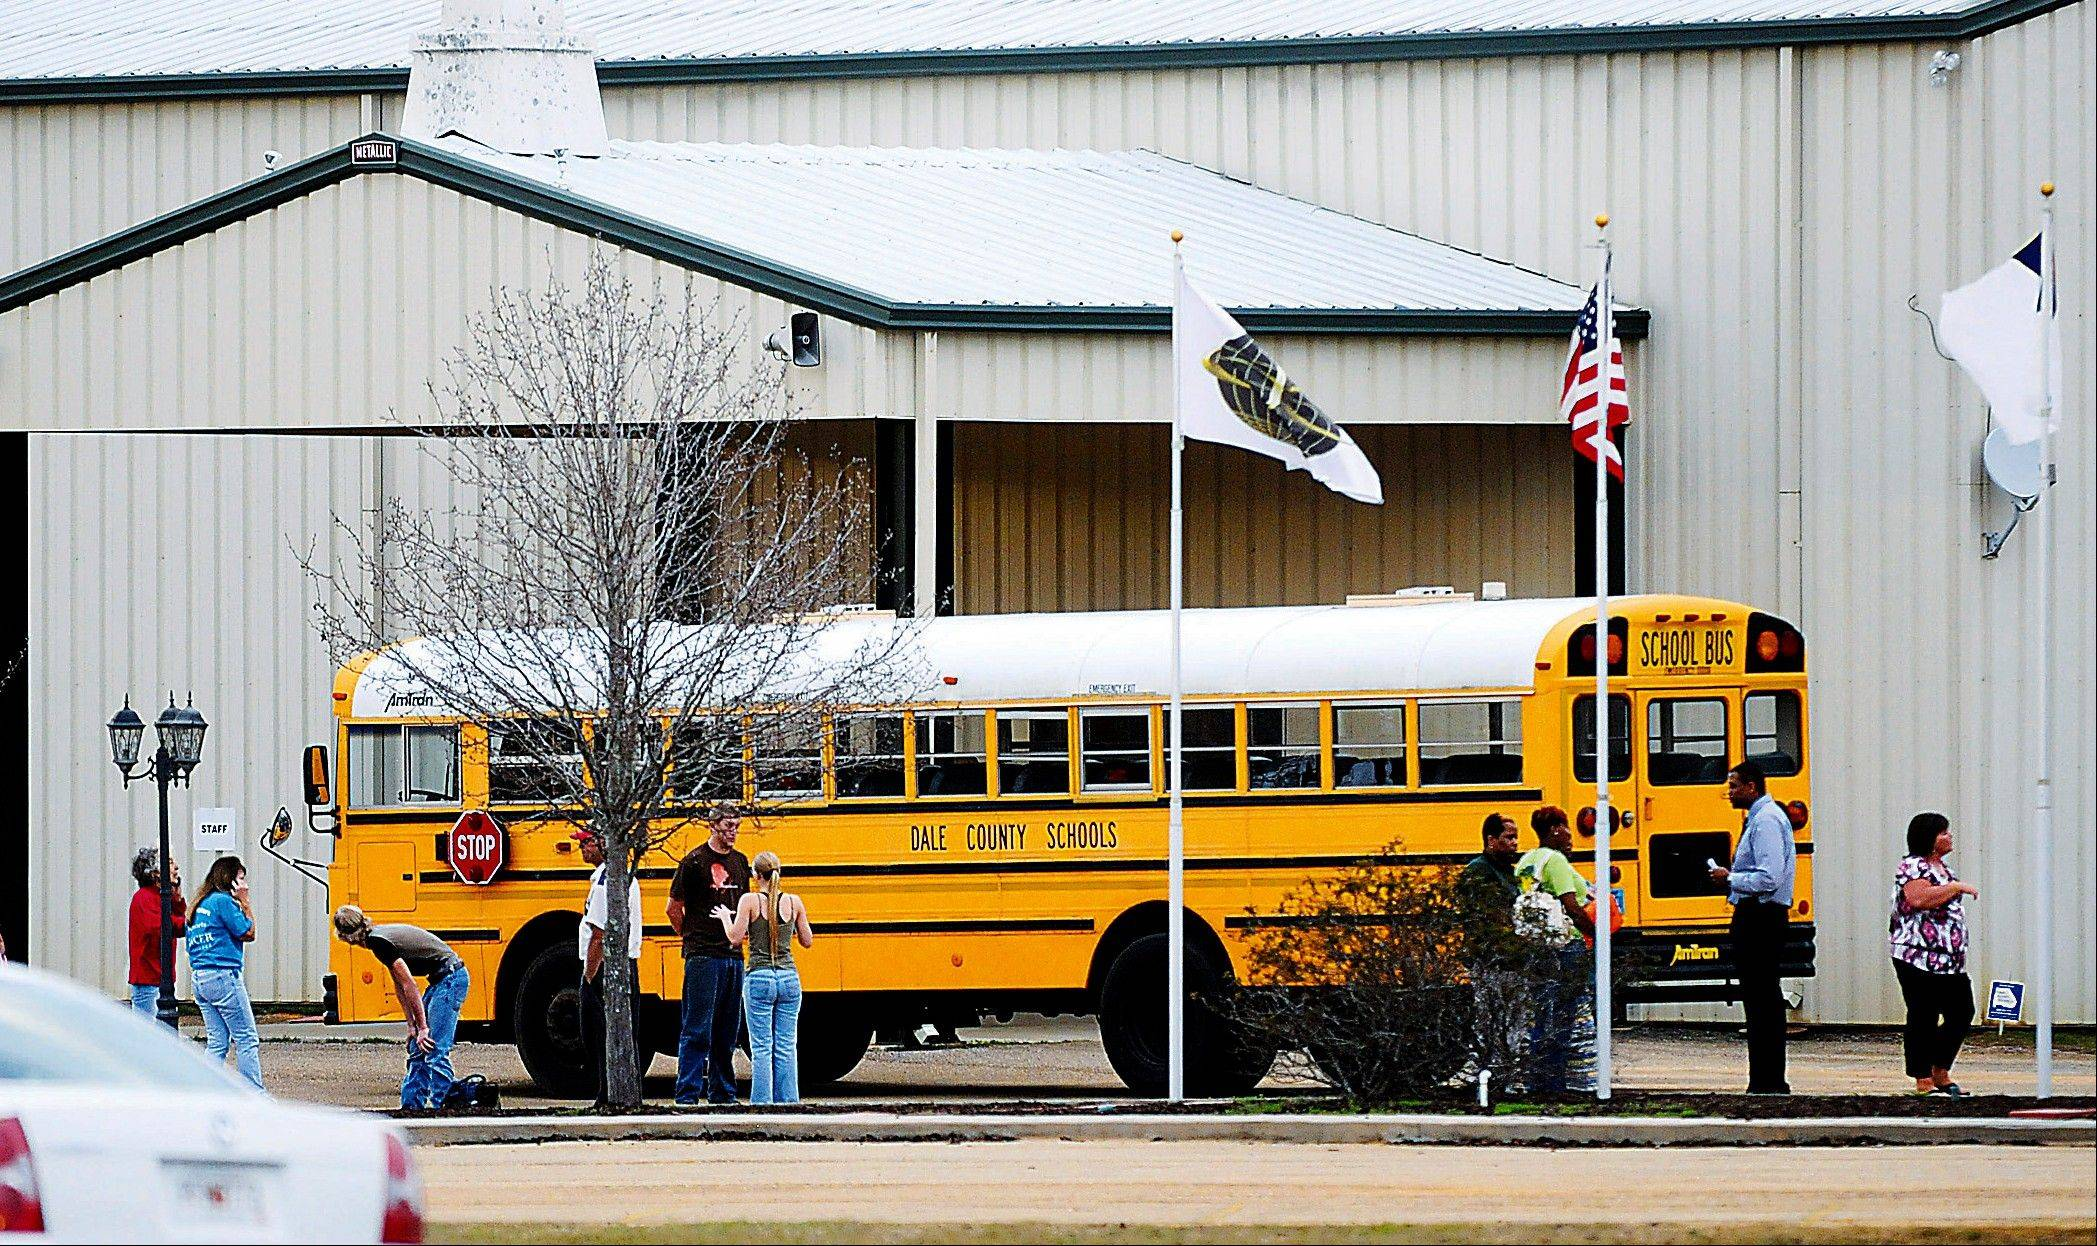 Police, SWAT teams and negotiators were at a rural property where a man was believed to be holed up in a homemade bunker Wednesday, HAN 30, 2013 after fatally shooting the driver of a school bus and fleeing with a 6-year-old child passenger, authorities said. The man boarded the stopped school bus in the town of Midland City on Tuesday afternoon and shot the driver when he refused to let the child off the bus. The bus driver died.